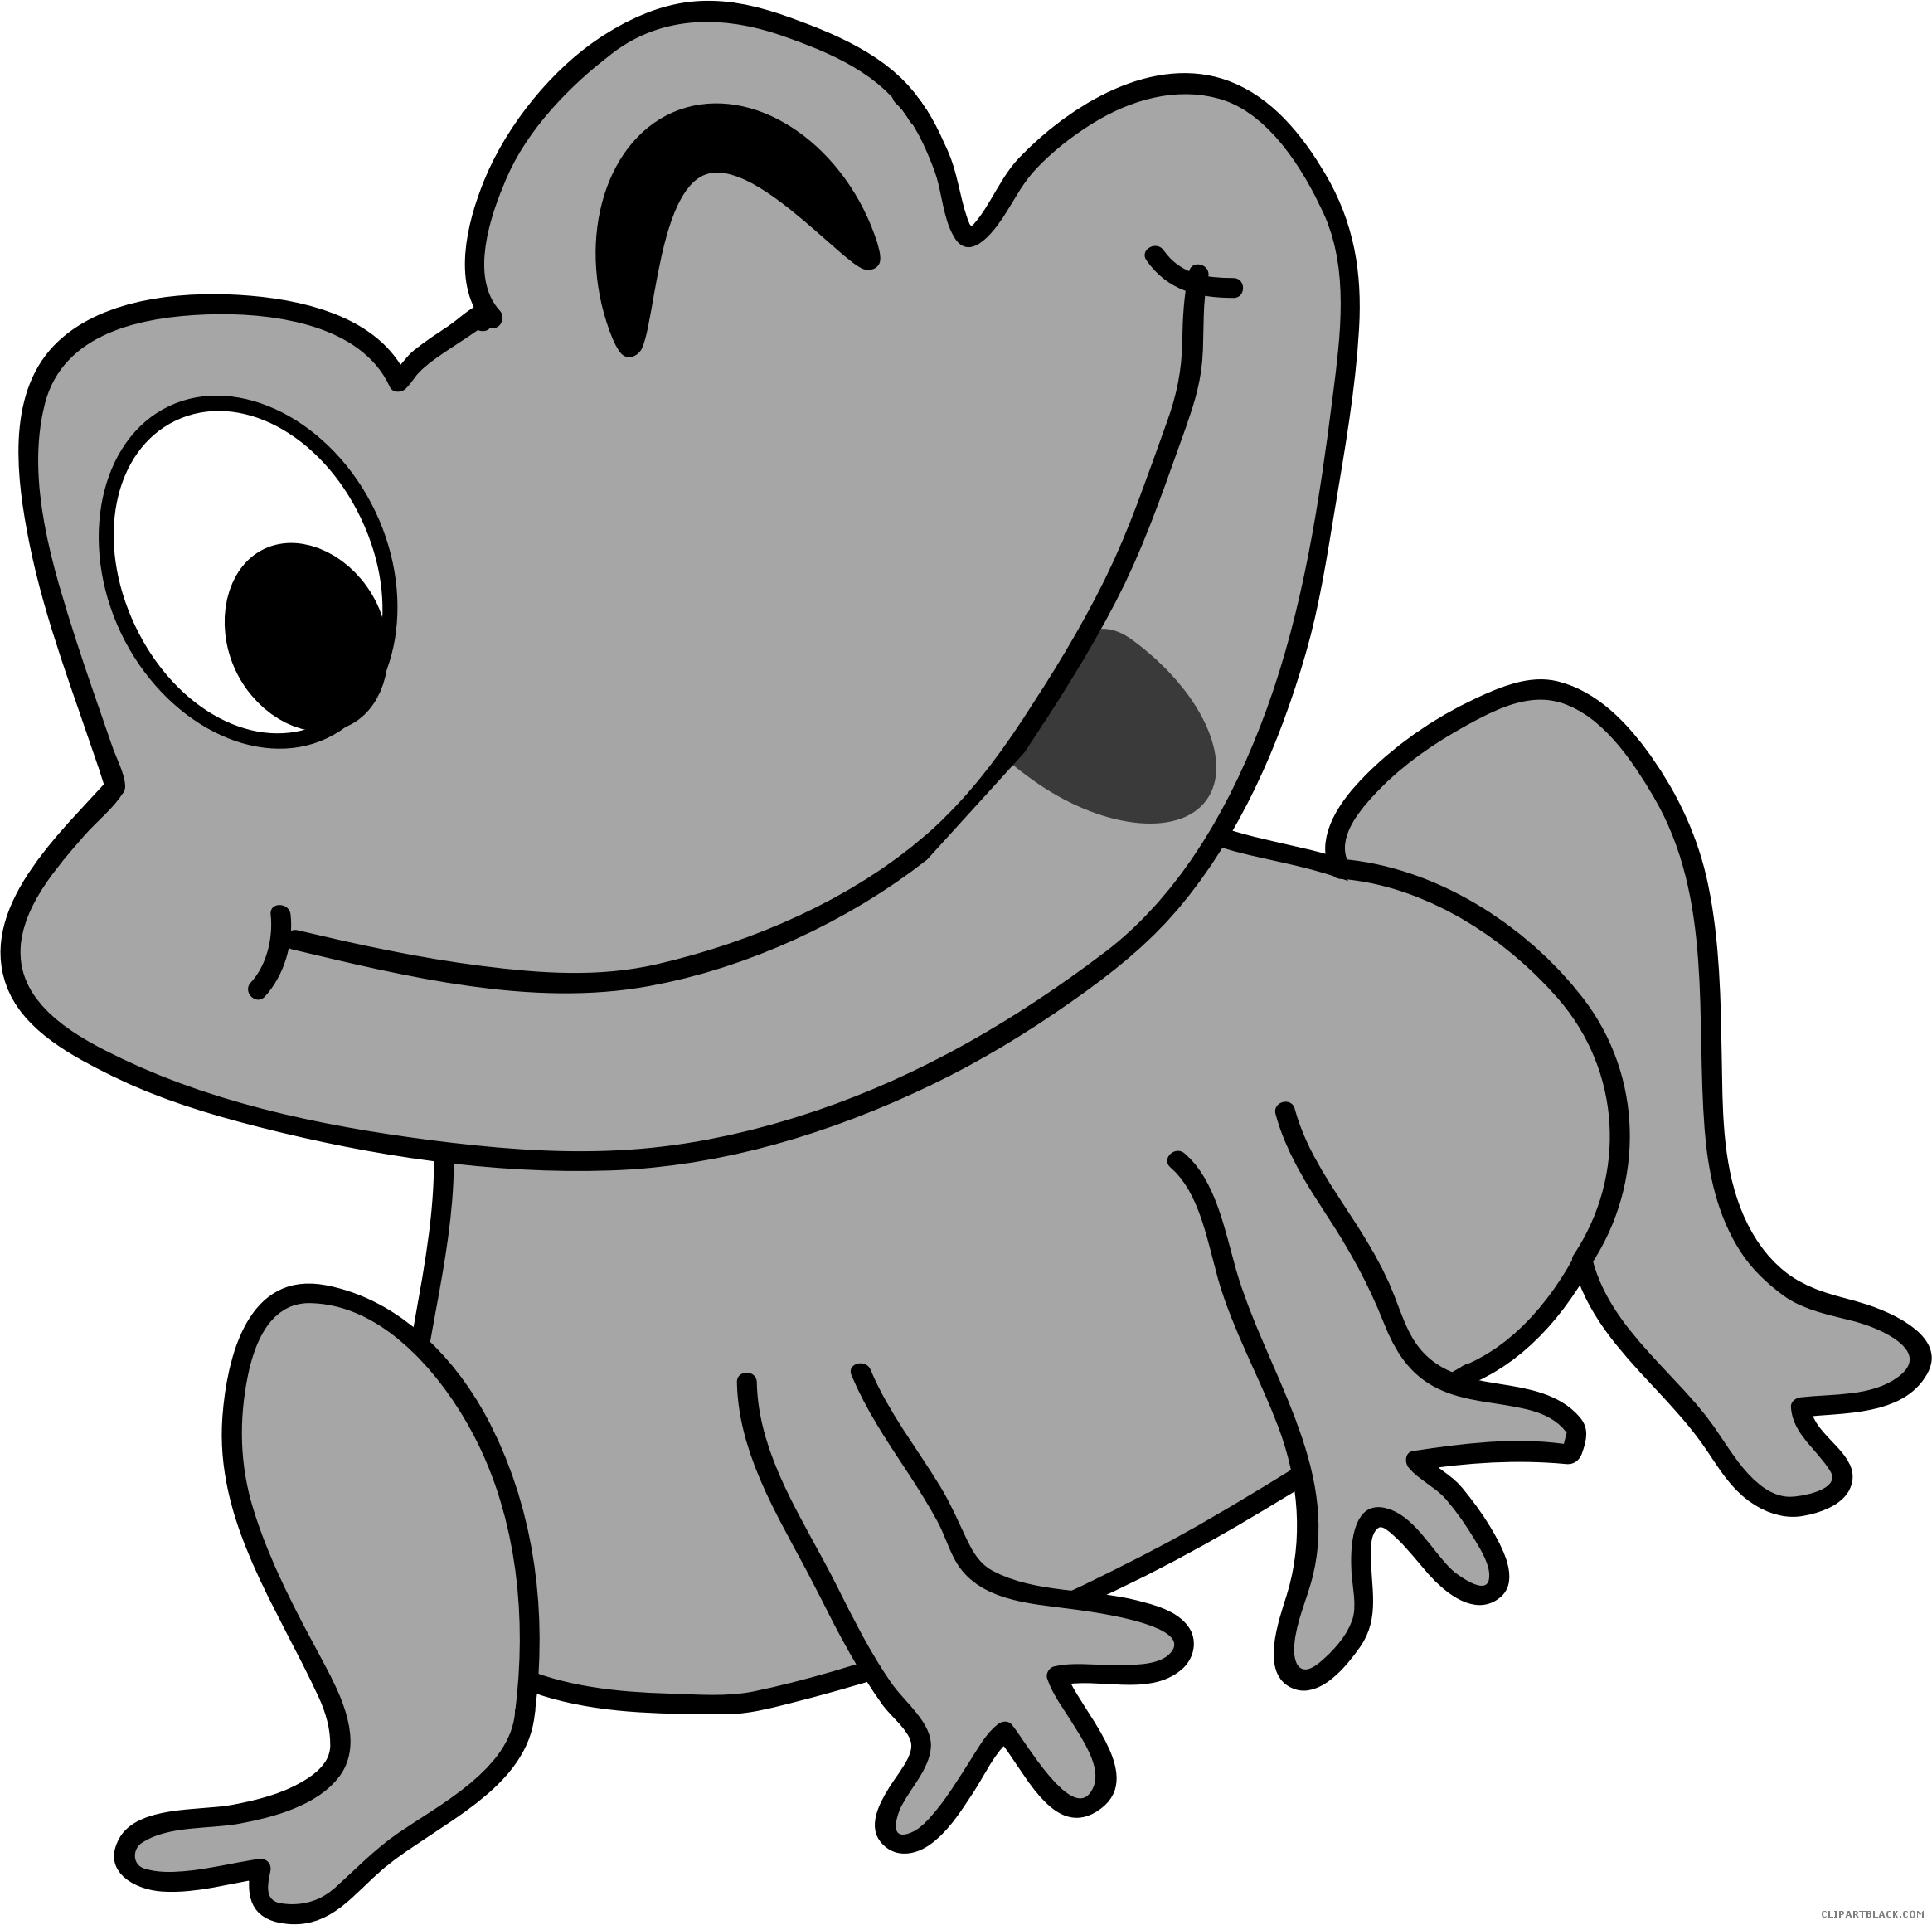 Cat and frog clipart clip freeuse Grayscale Frog Clipart - Page 2 of 4 - ClipartBlack.com clip freeuse